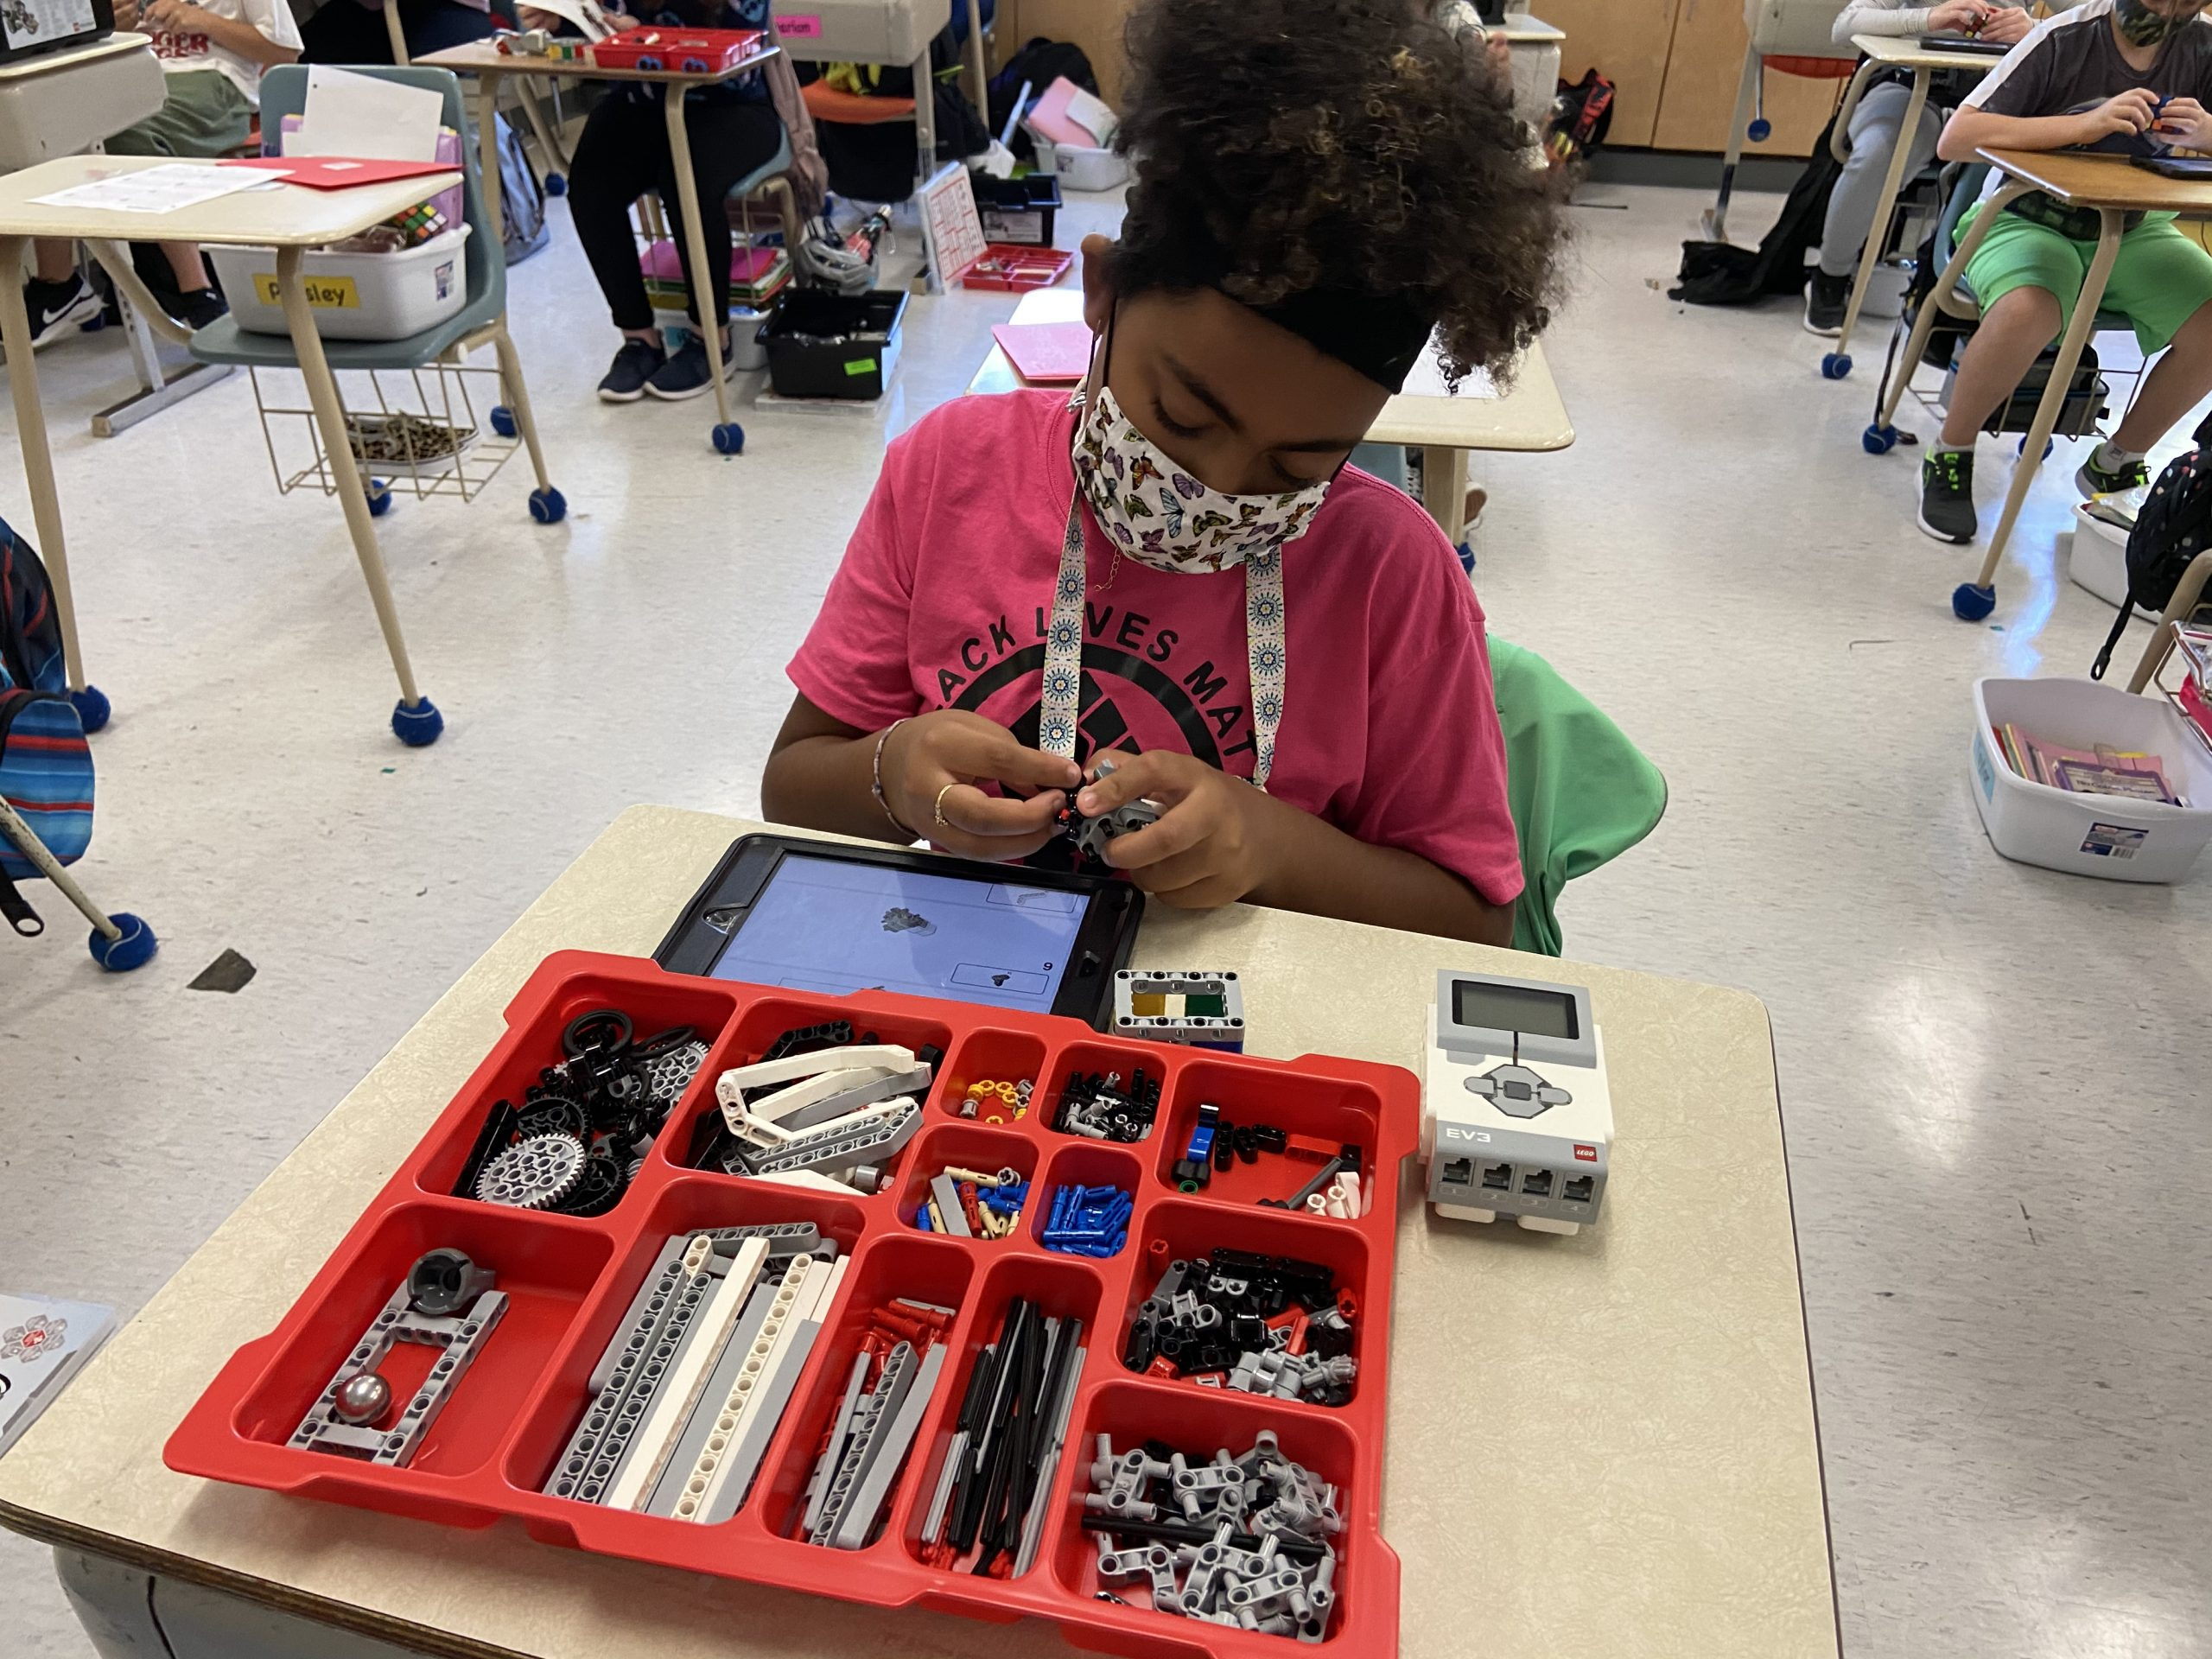 A girl works with her robot kit.